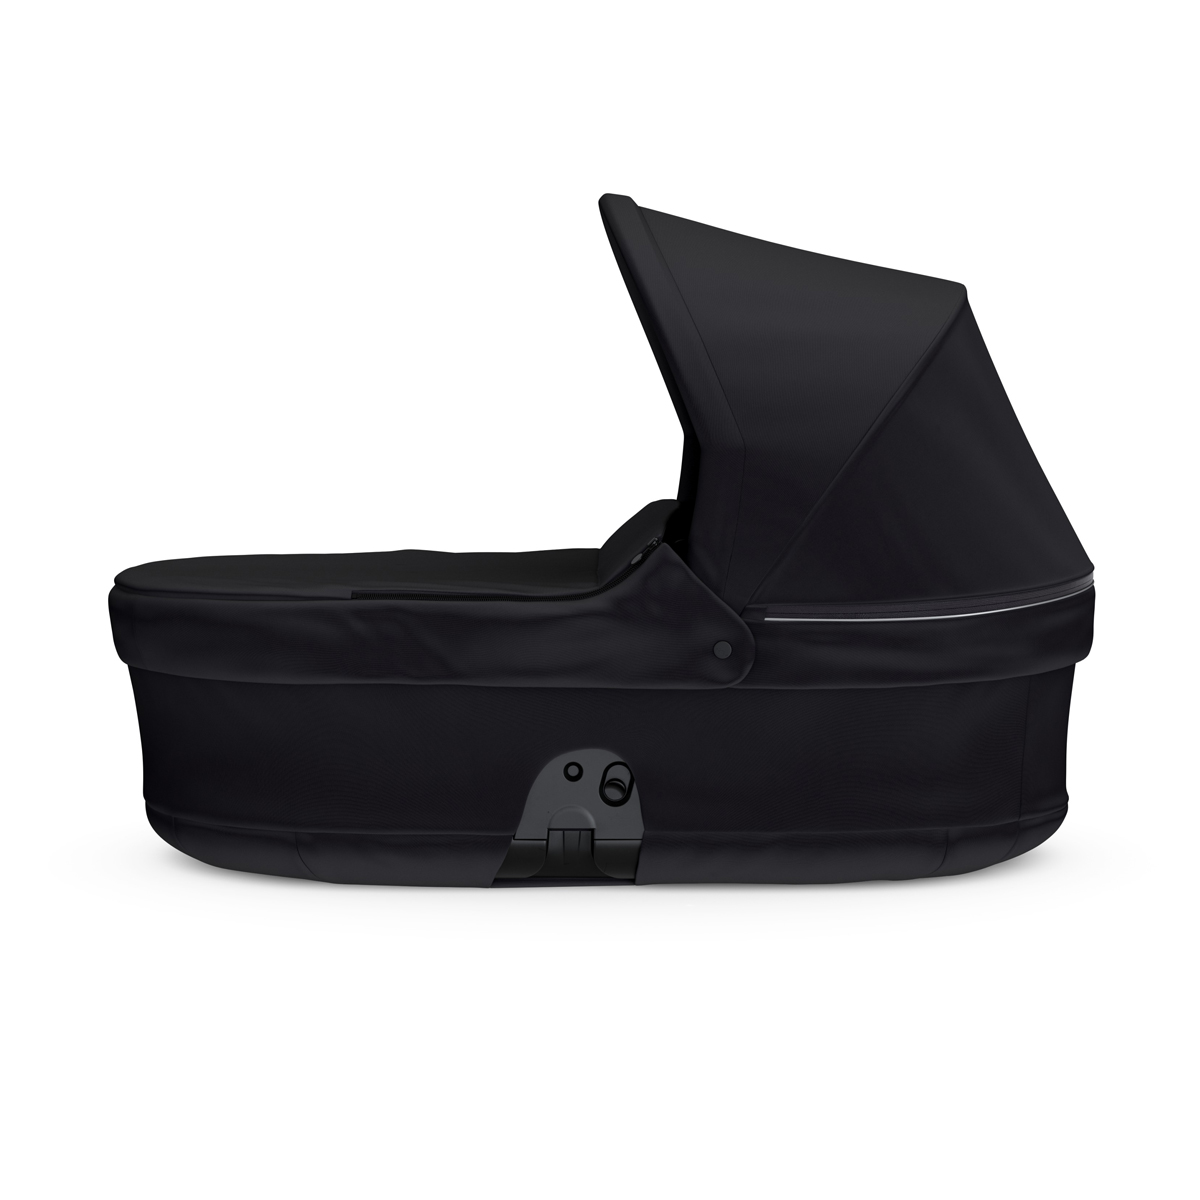 Stokke Beat Carry Cot in Black